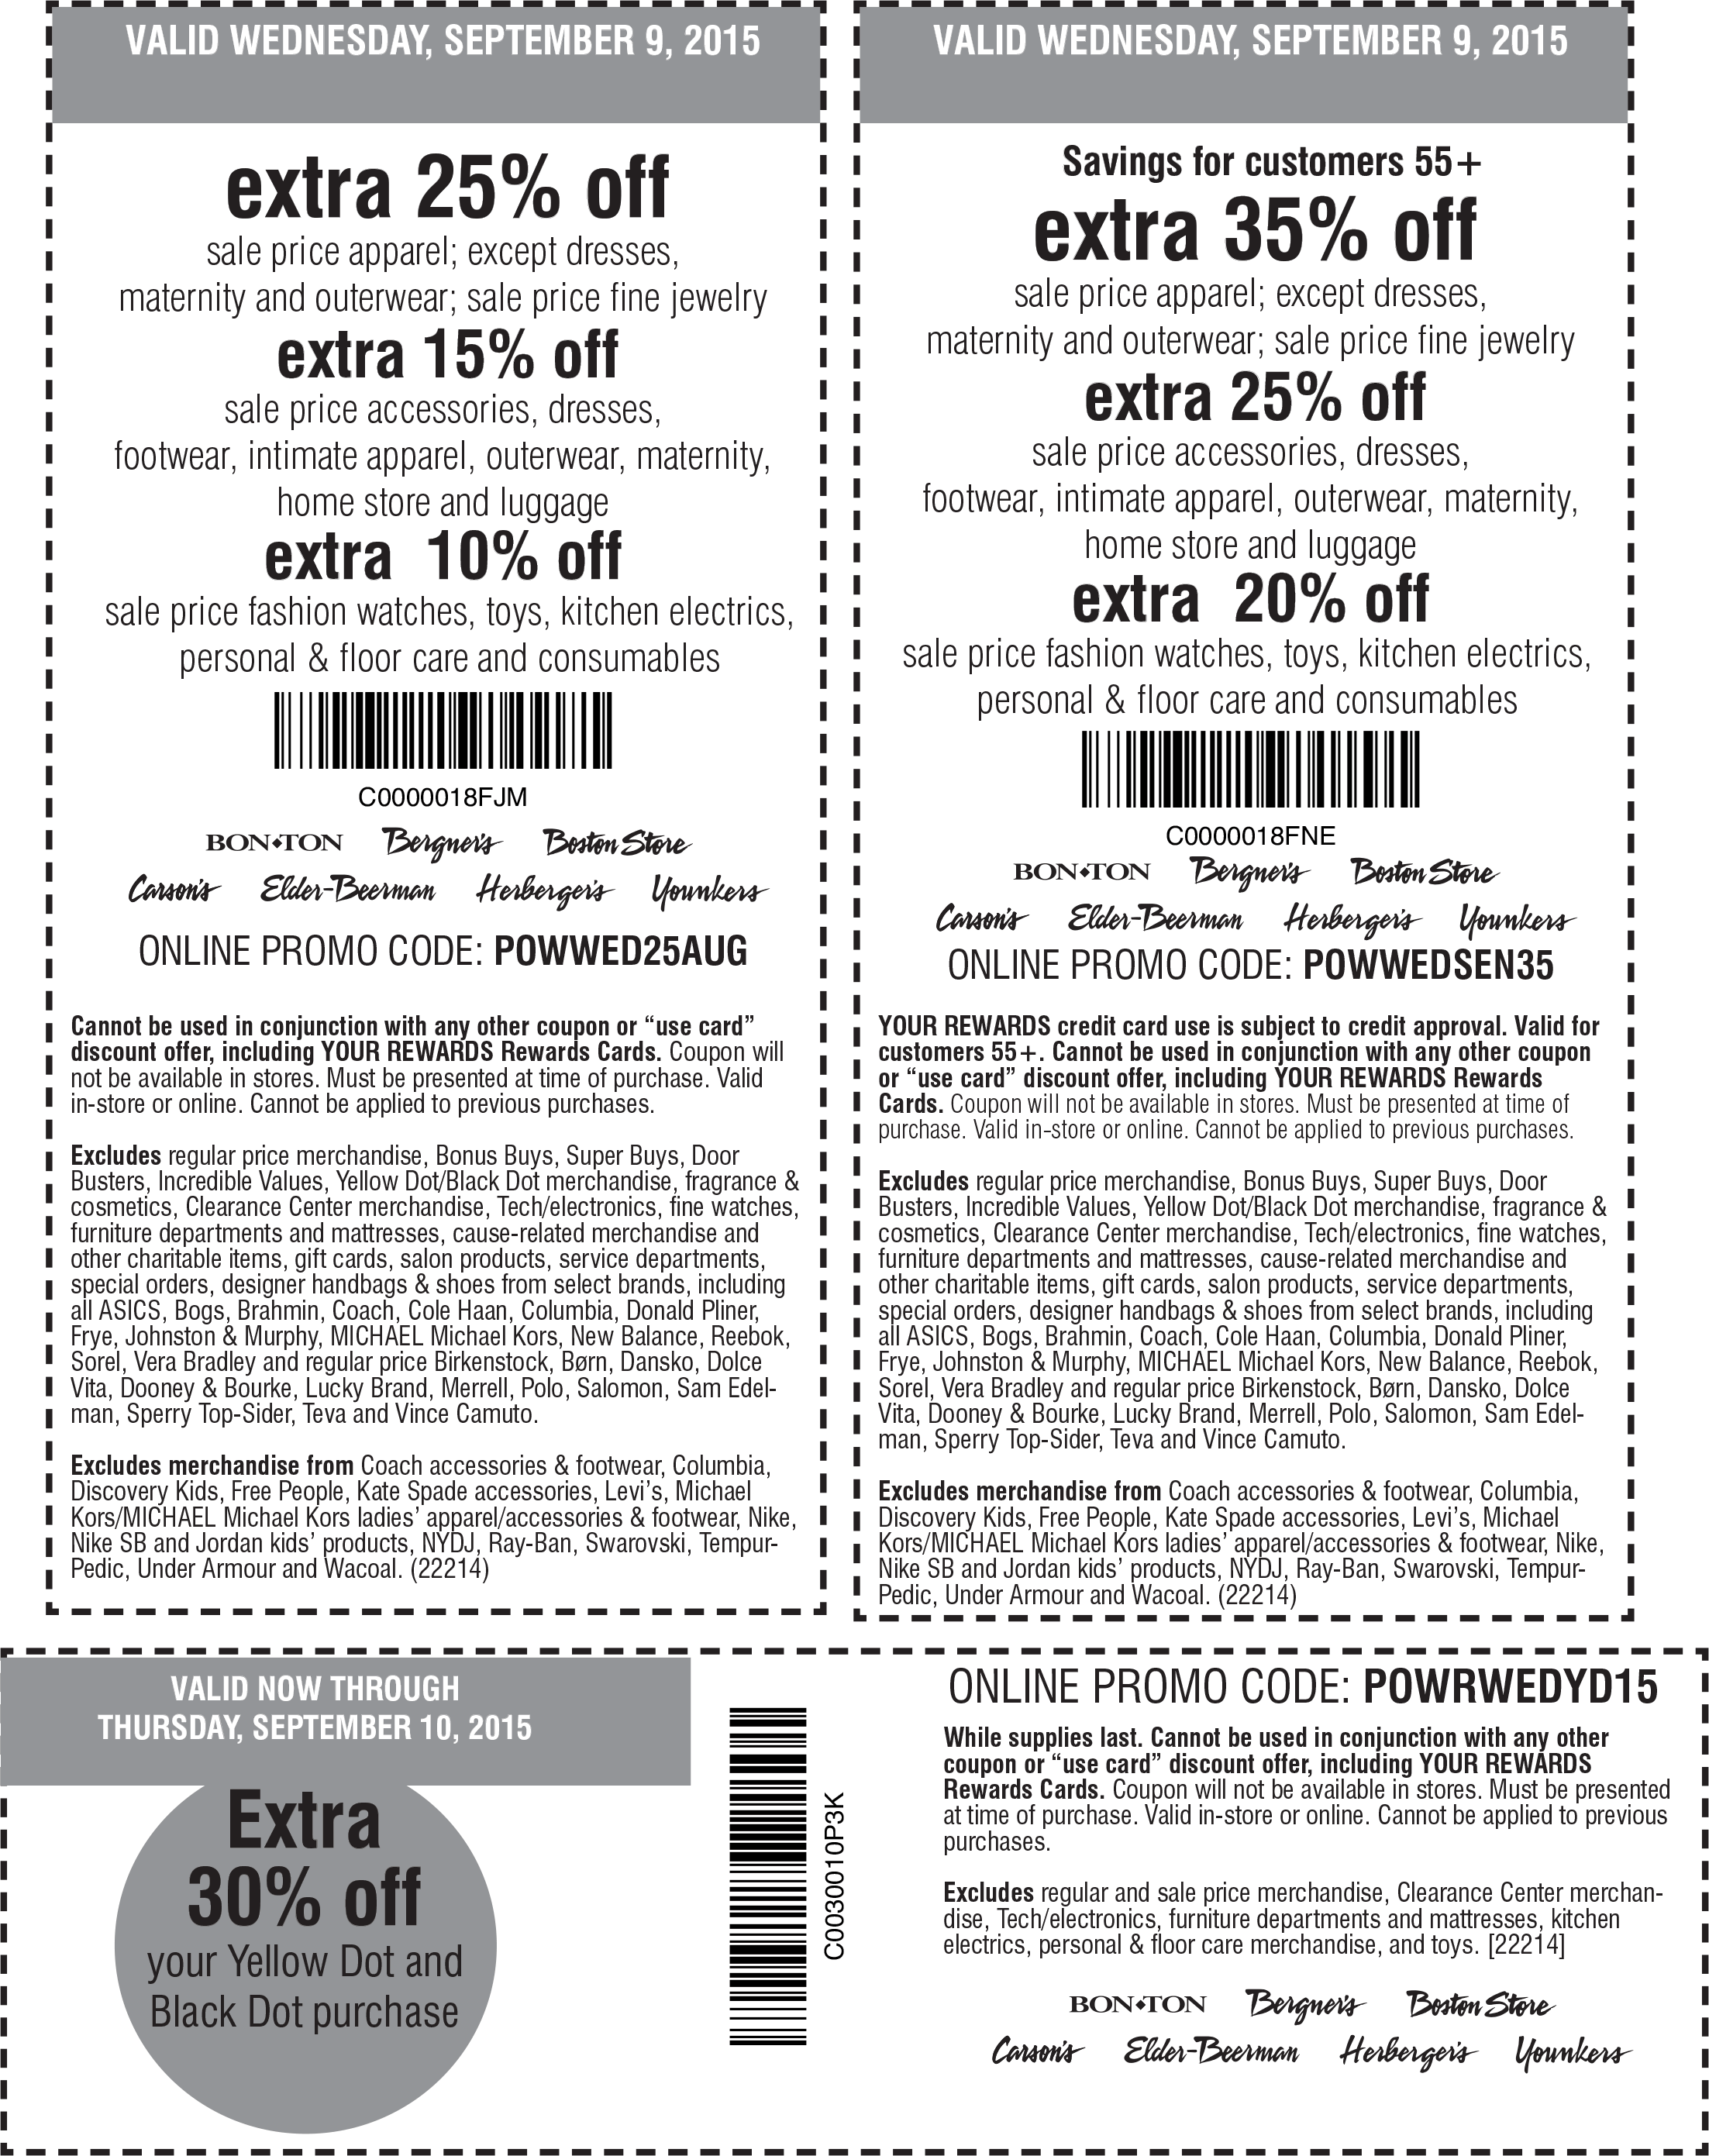 Carsons Coupon June 2017 Extra 25-35% off sale apparel & more at Carsons, Bon Ton & sister stores, or online via promo code POWWED25AUG